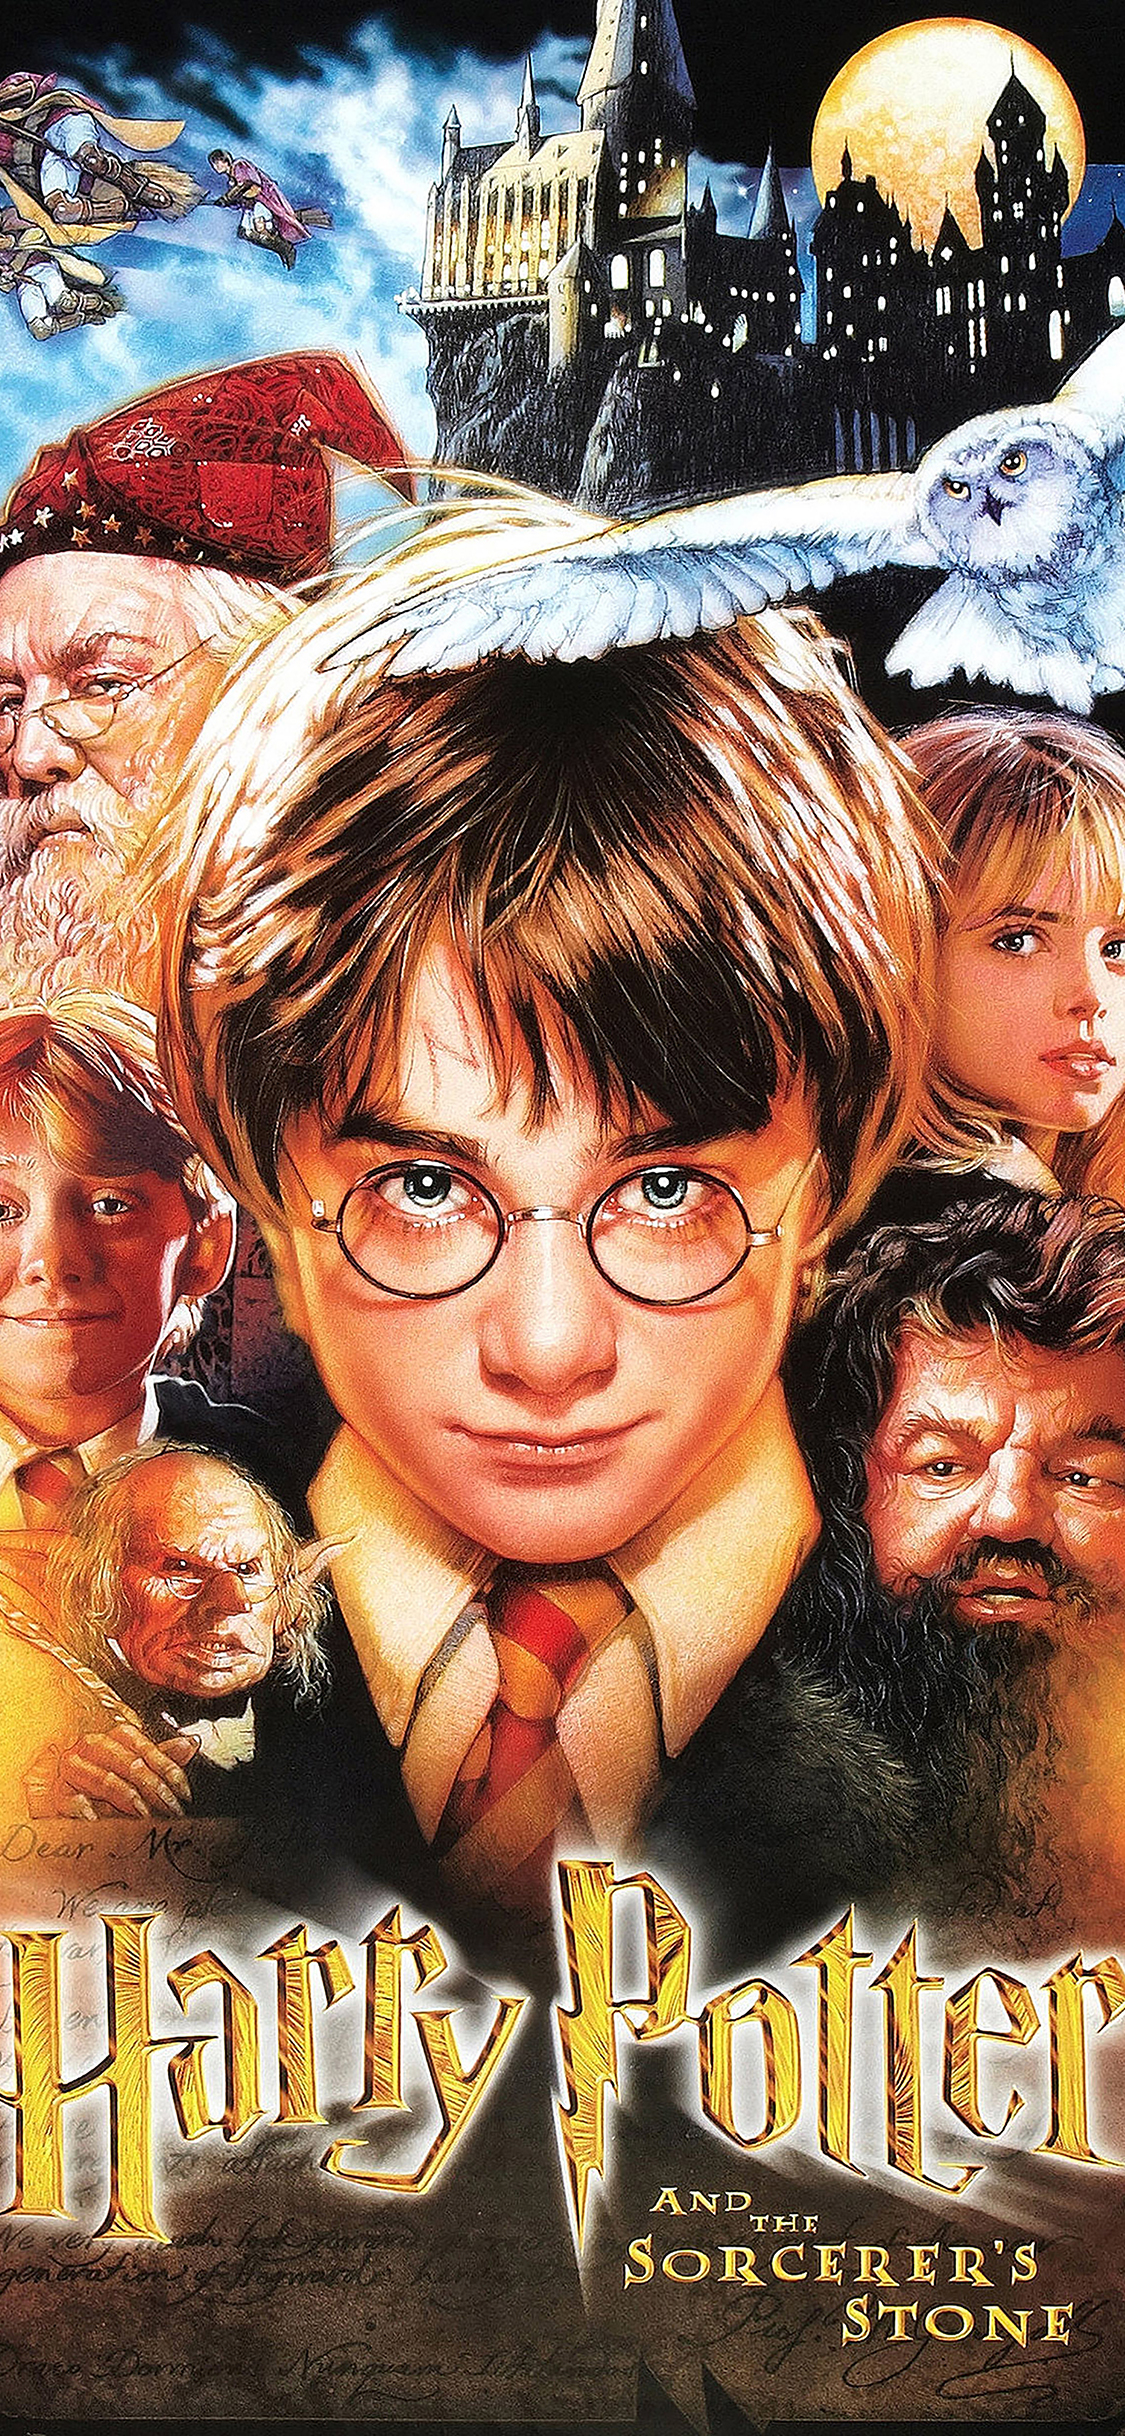 ab62-wallpaper-harry-potter-poster - Papers.co